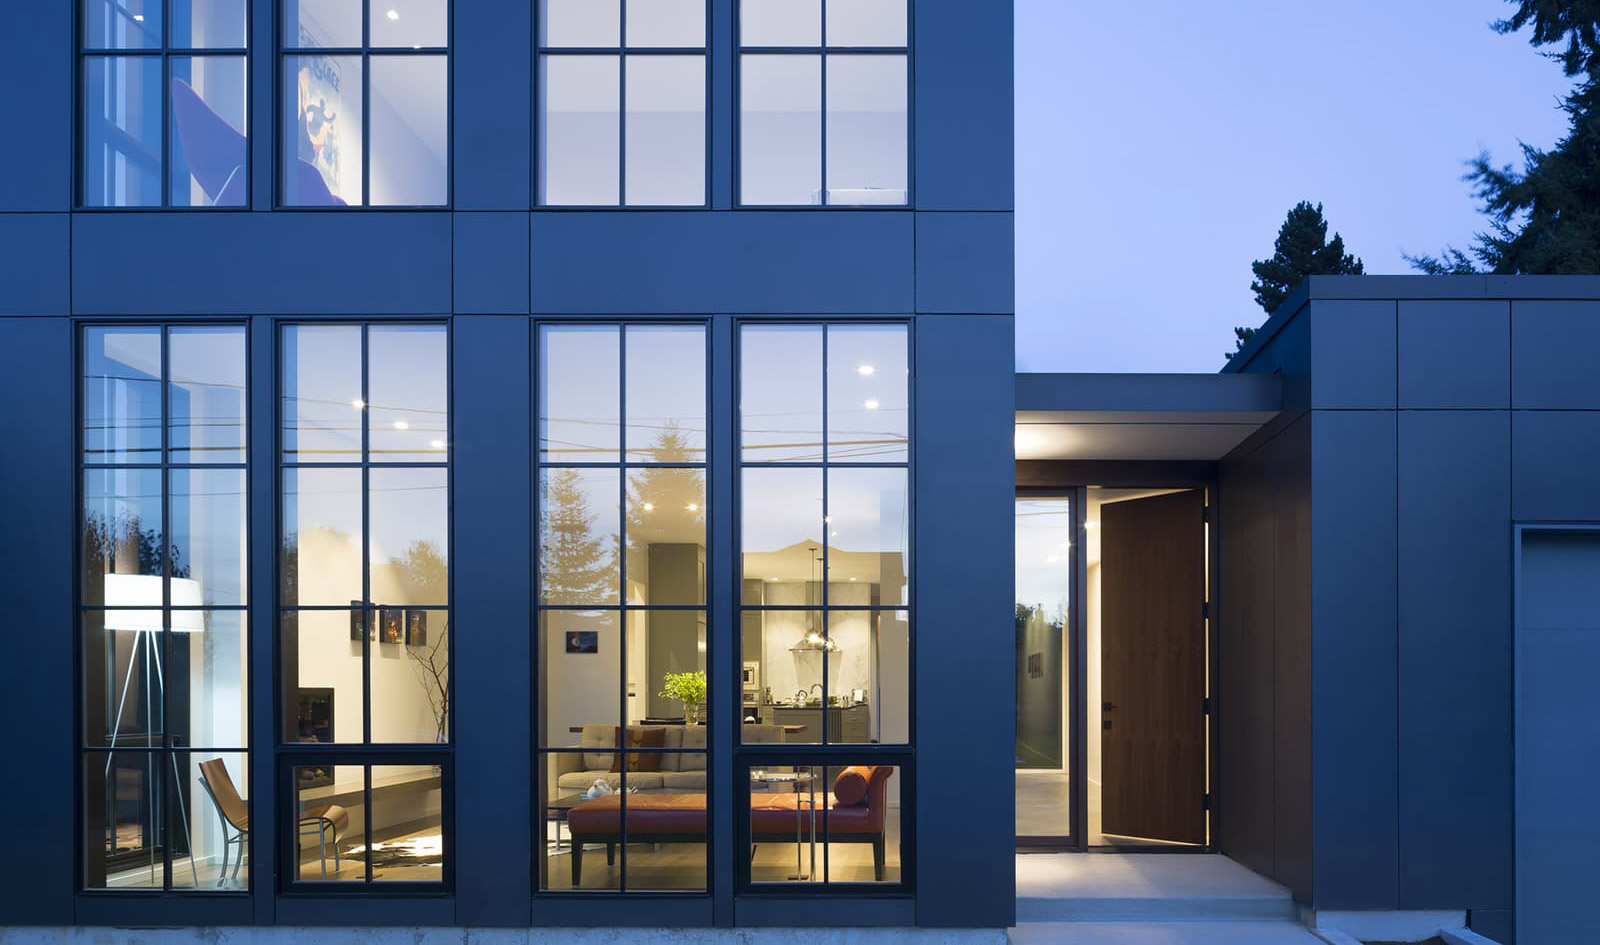 Magnolia MODERN - Situated in the Seattle neighborhood of Magnolia, the goal was to create a modern spacious home with lots of light – a classic yet modern feel, all while managing a limited budget. Economy of structure and materials was exercised.